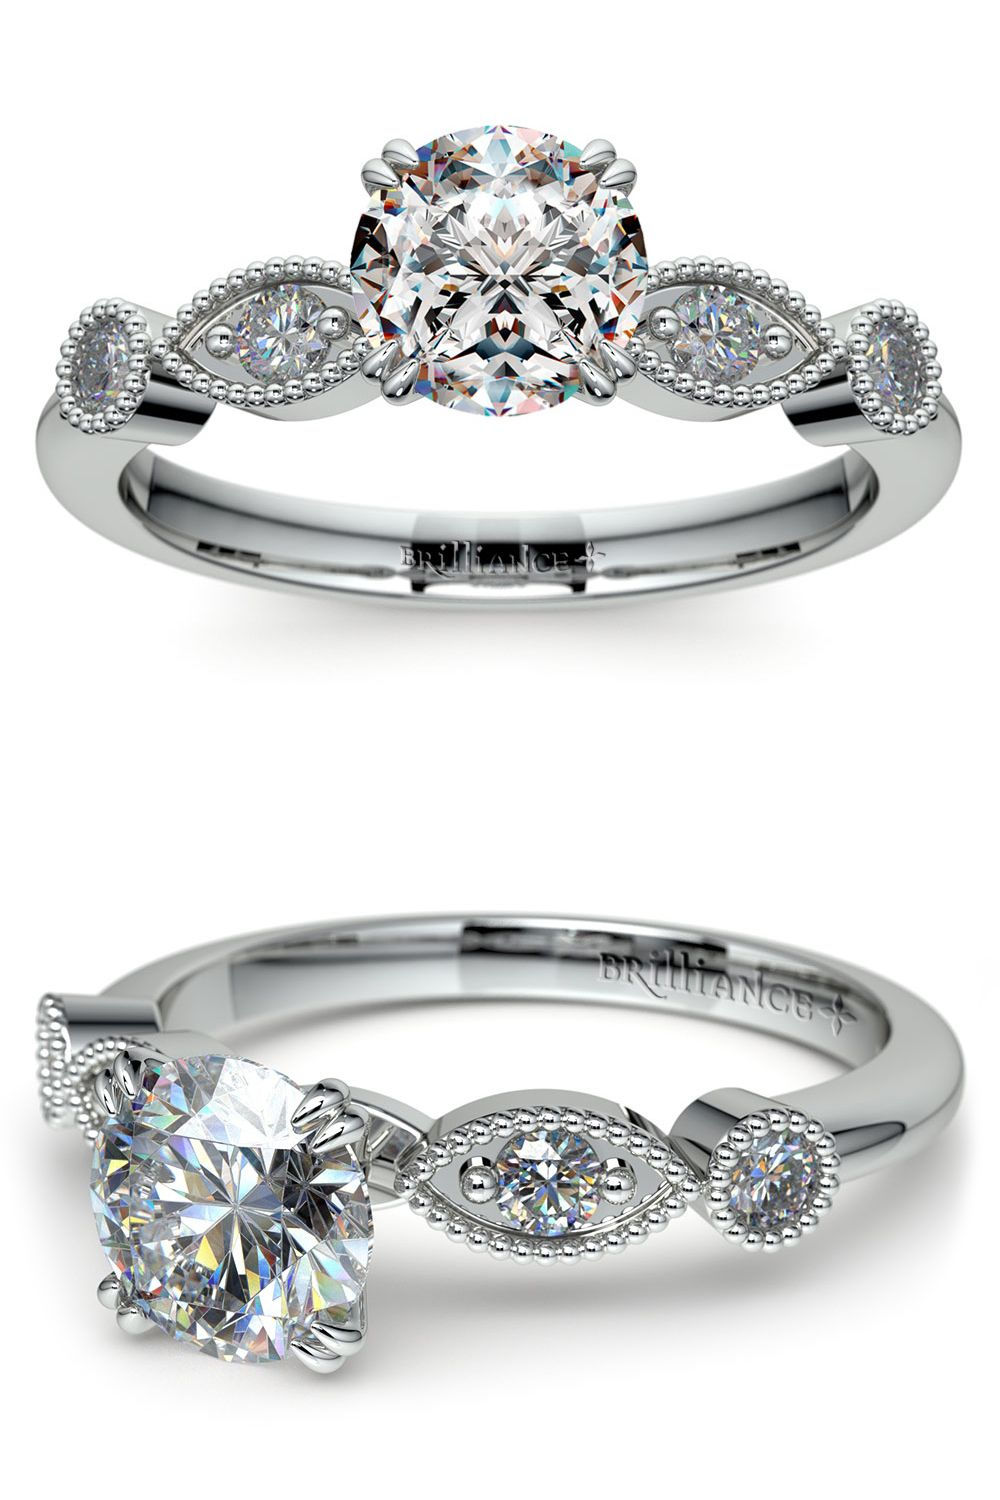 rings engagementdetails ring edwardian cfm in style engagement gold white diamond butterfly